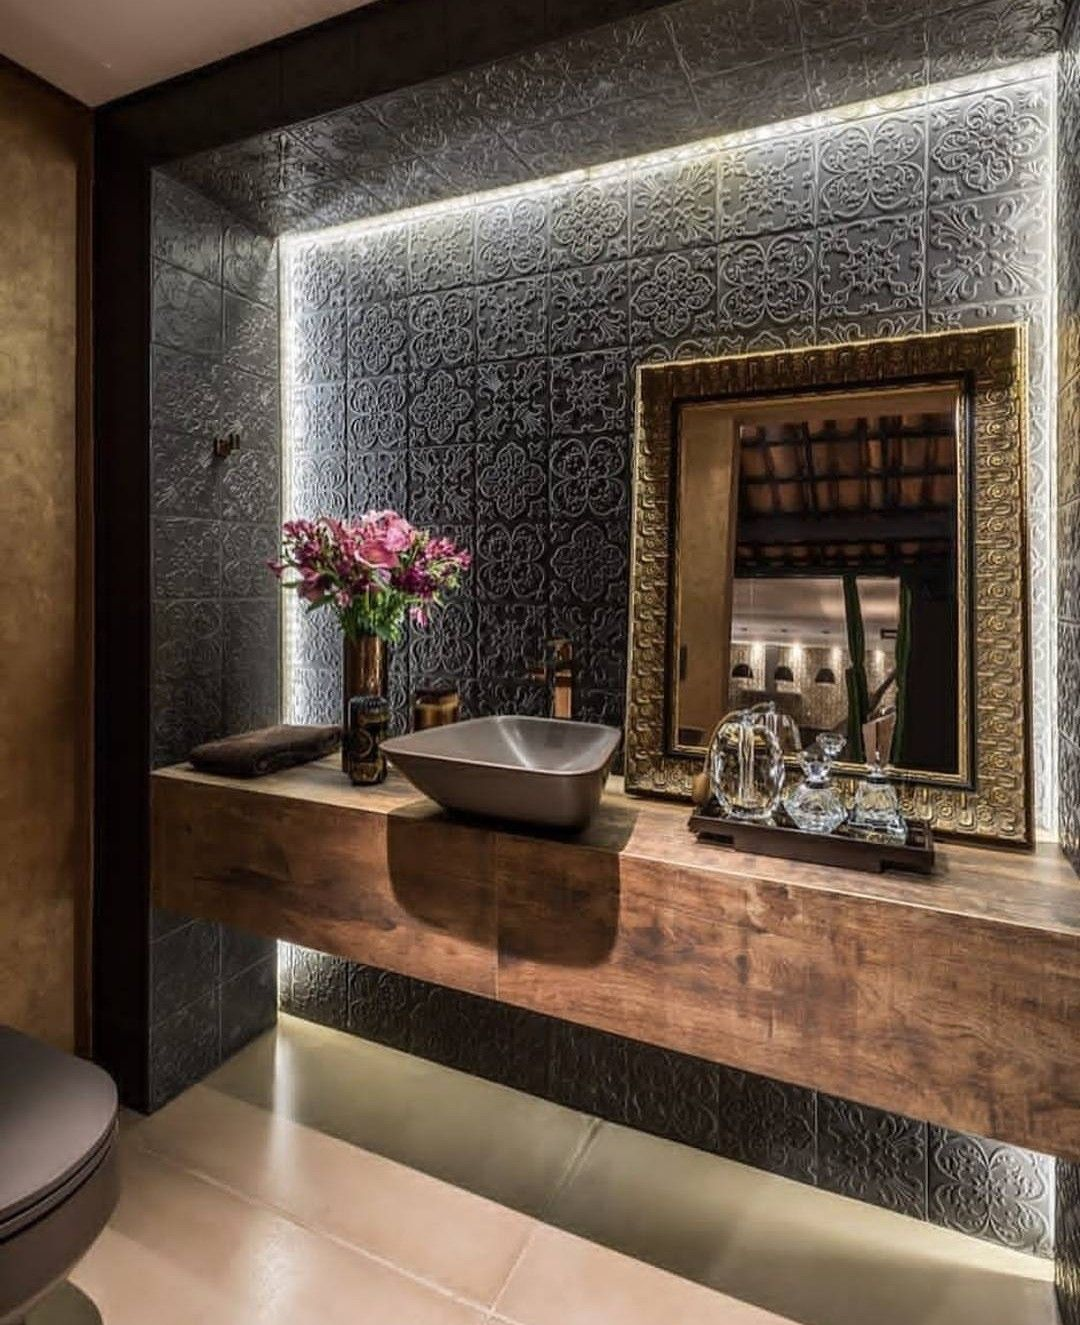 Industriele Keuken Restaurant Restaurant Level Bathroom Design Bathroomgoals Toilet